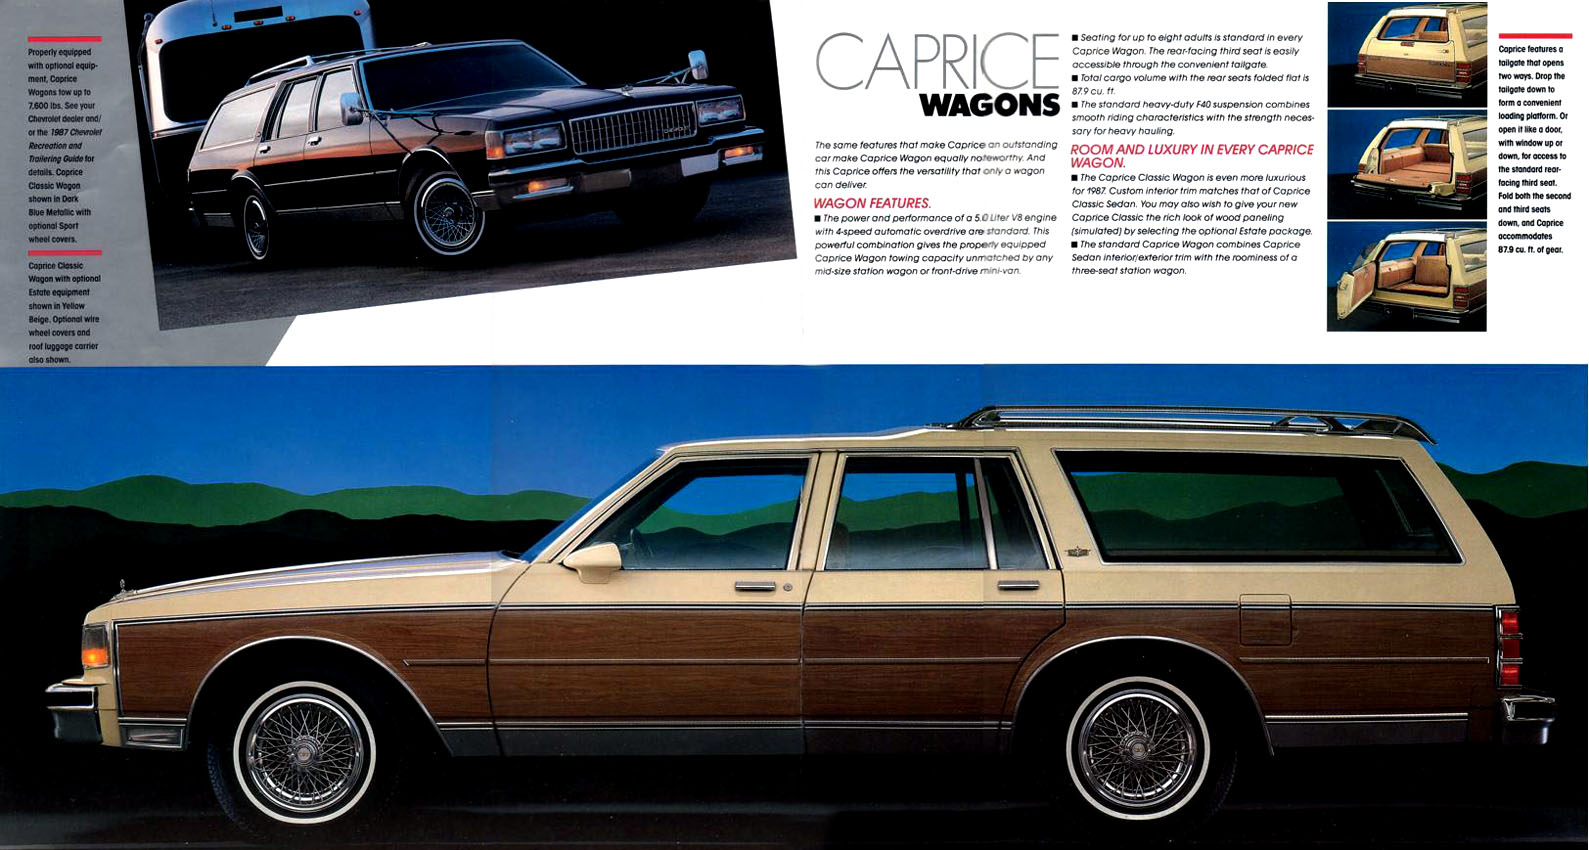 All Chevy chevy caprice 1985 : 1985-88 Chevrolet Caprice Estate / Ford LTD Country Squire wagons ...